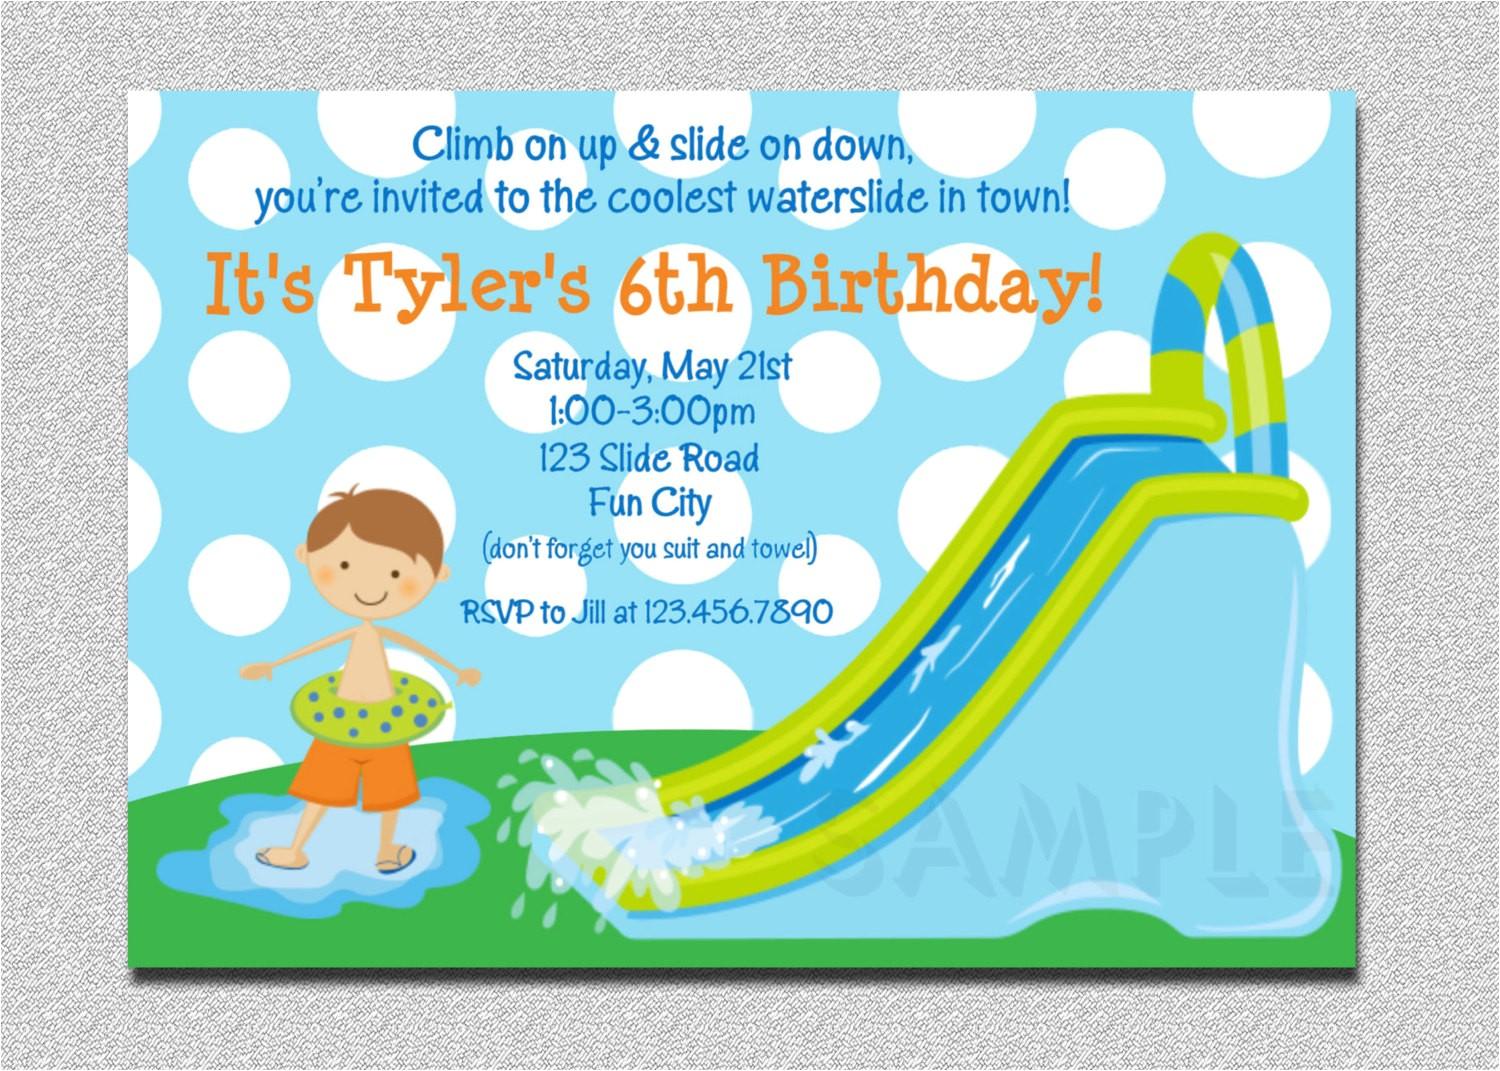 Water Slide Birthday Party Invitations Waterslide Birthday Invitations Water Slide Birthday Party